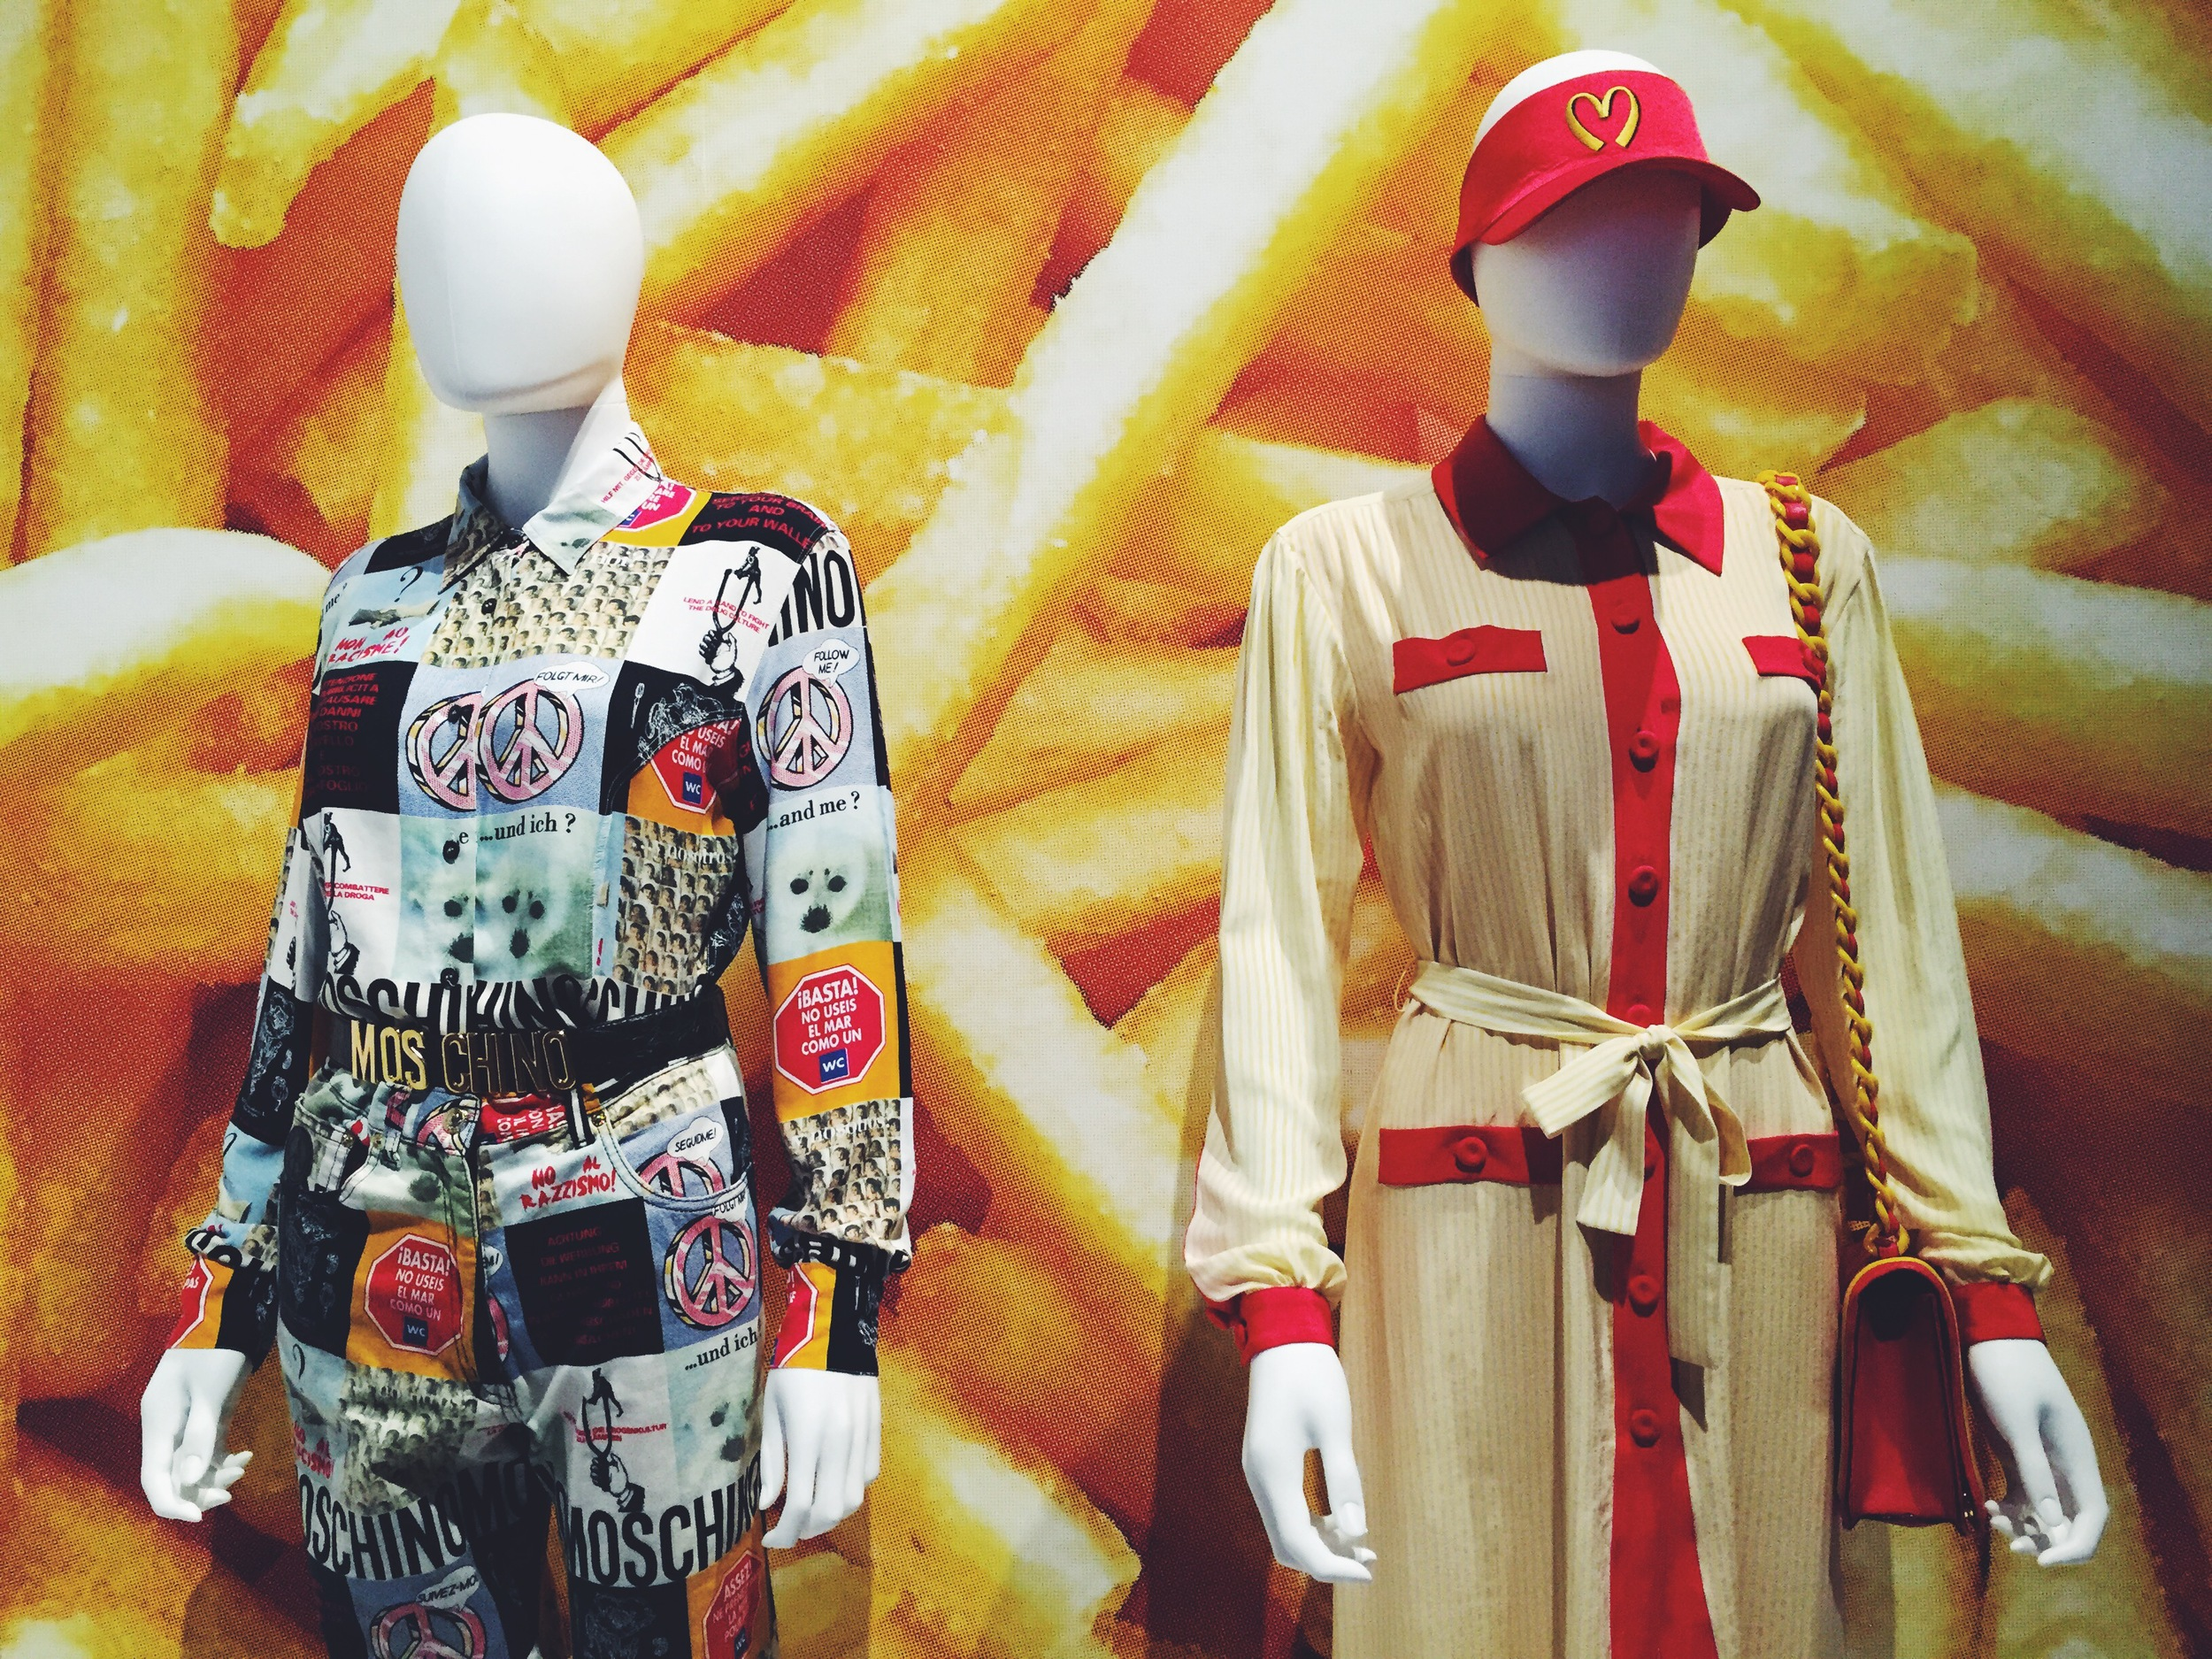 Moschino at  Politics of Fashion / Fashion of Politics  at the Design Exchange.